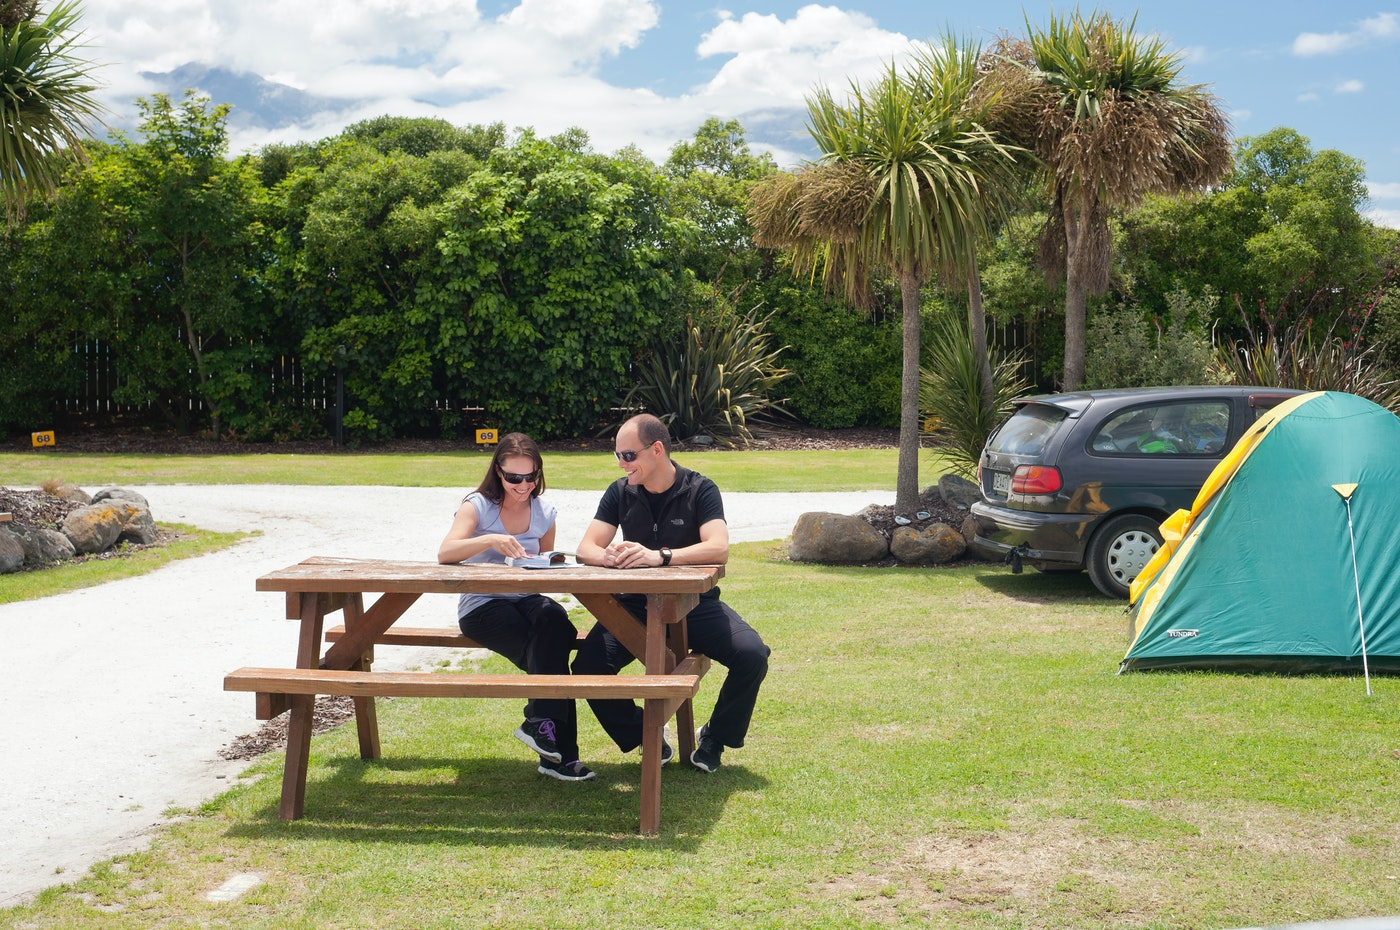 kaikoura holiday park accommodation sites